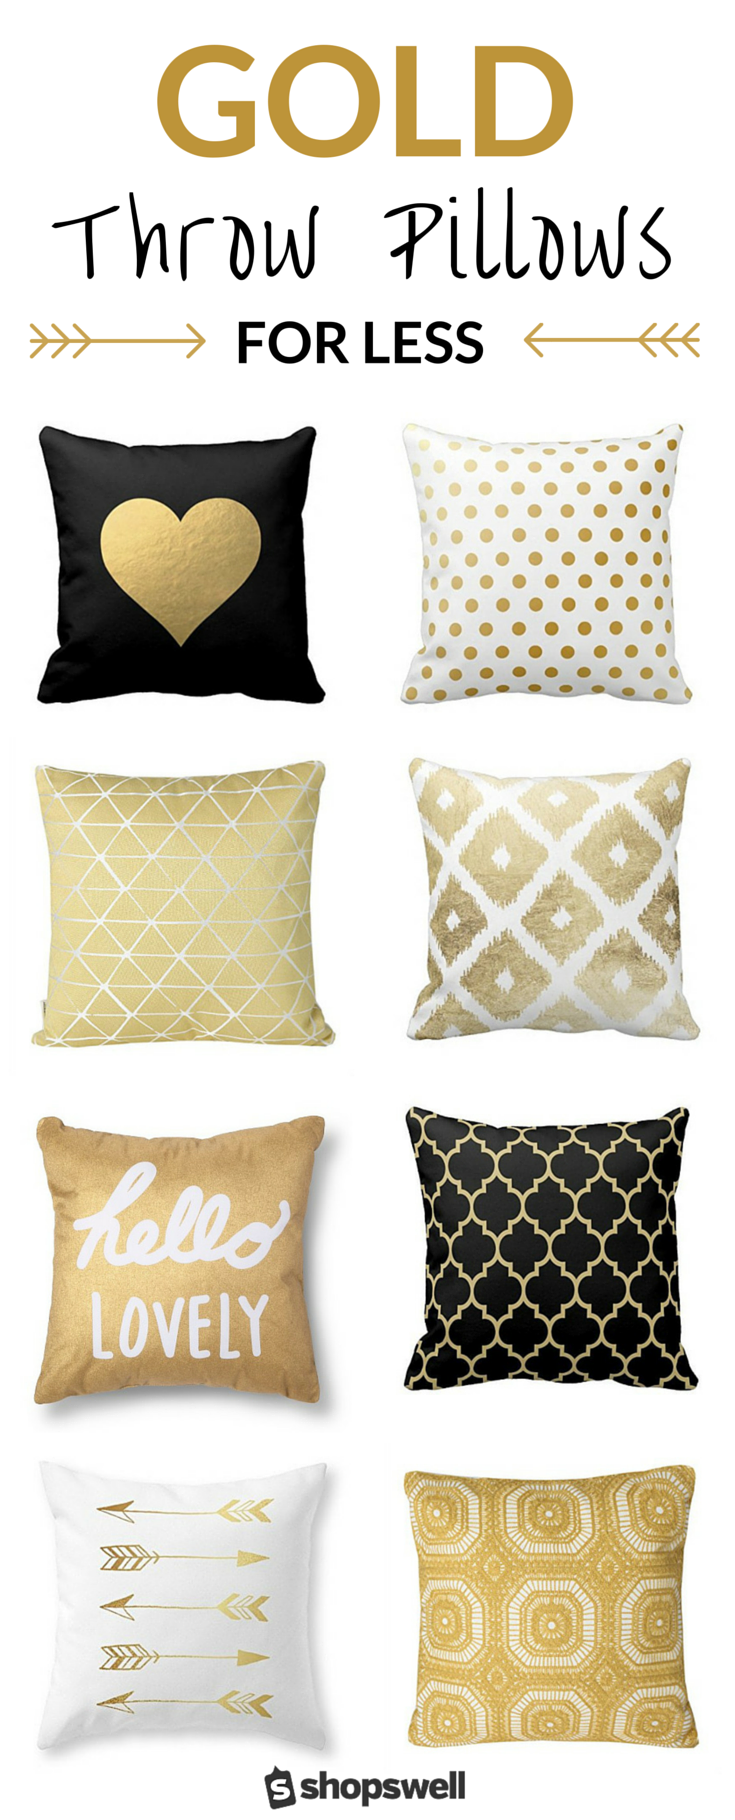 Cheap Decorative Pillows Under $10 Awesome The Midas Touch 20 Fabulously Affordable Gold Throw Pillows Review